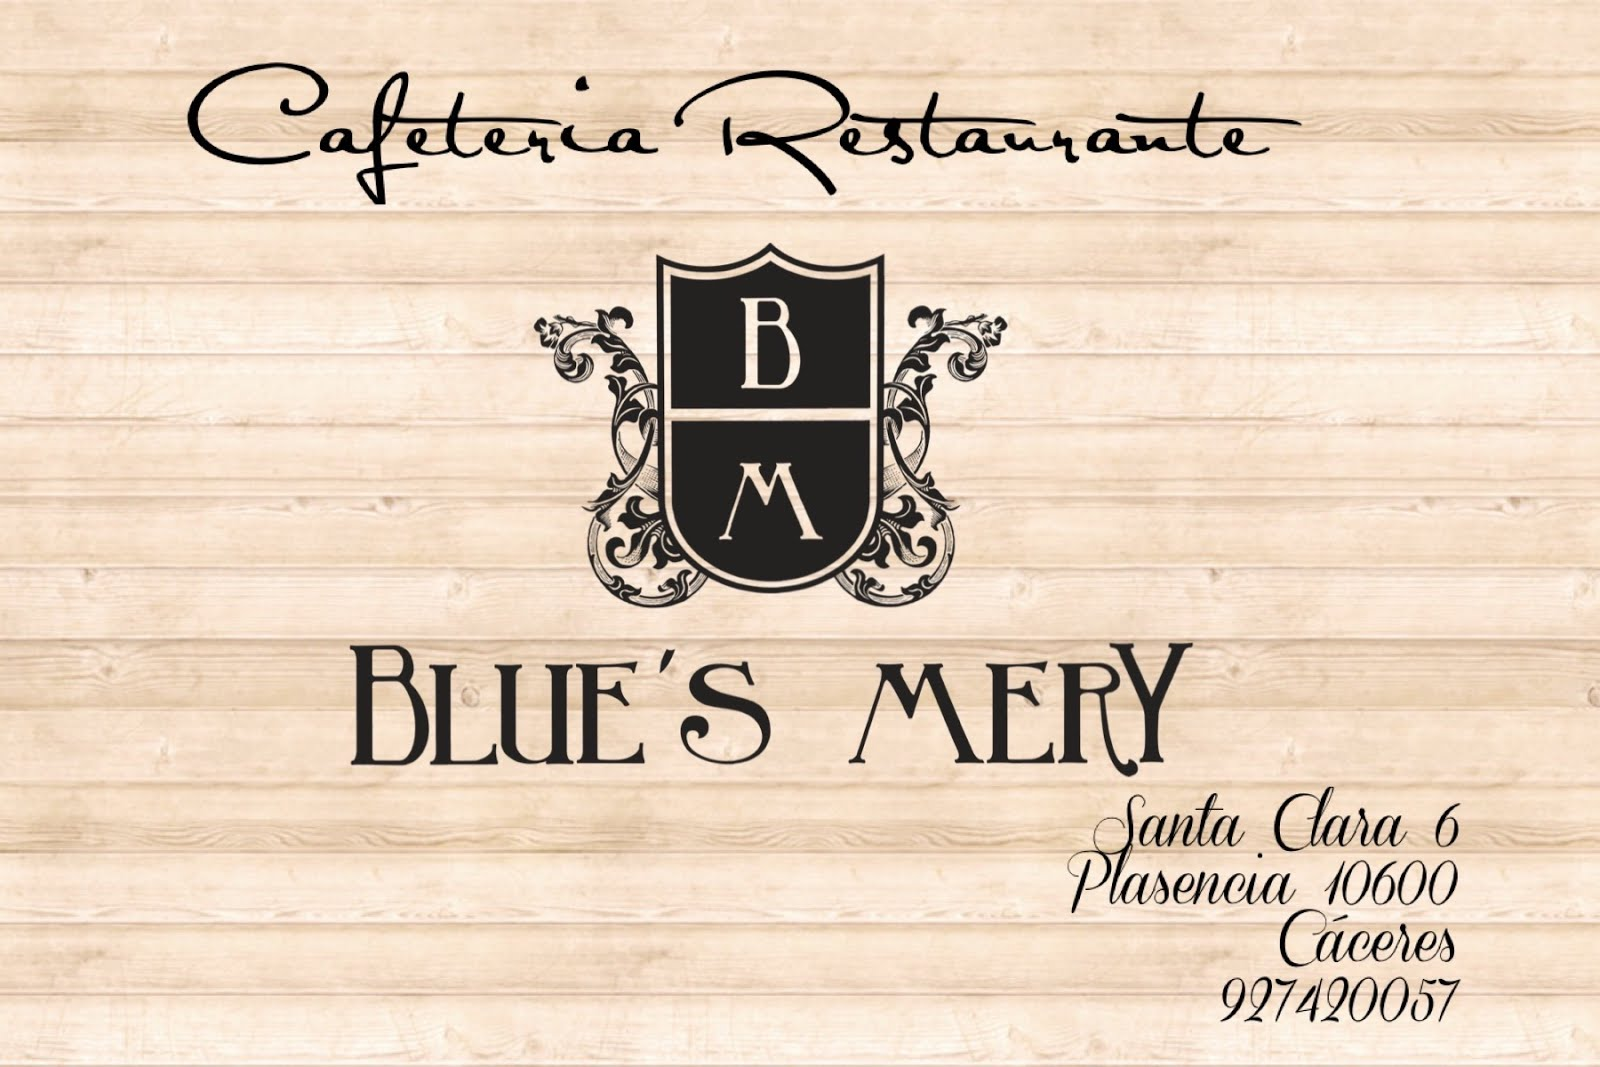 CAFETERIA-RESTAURANTE BLUE'S MARY